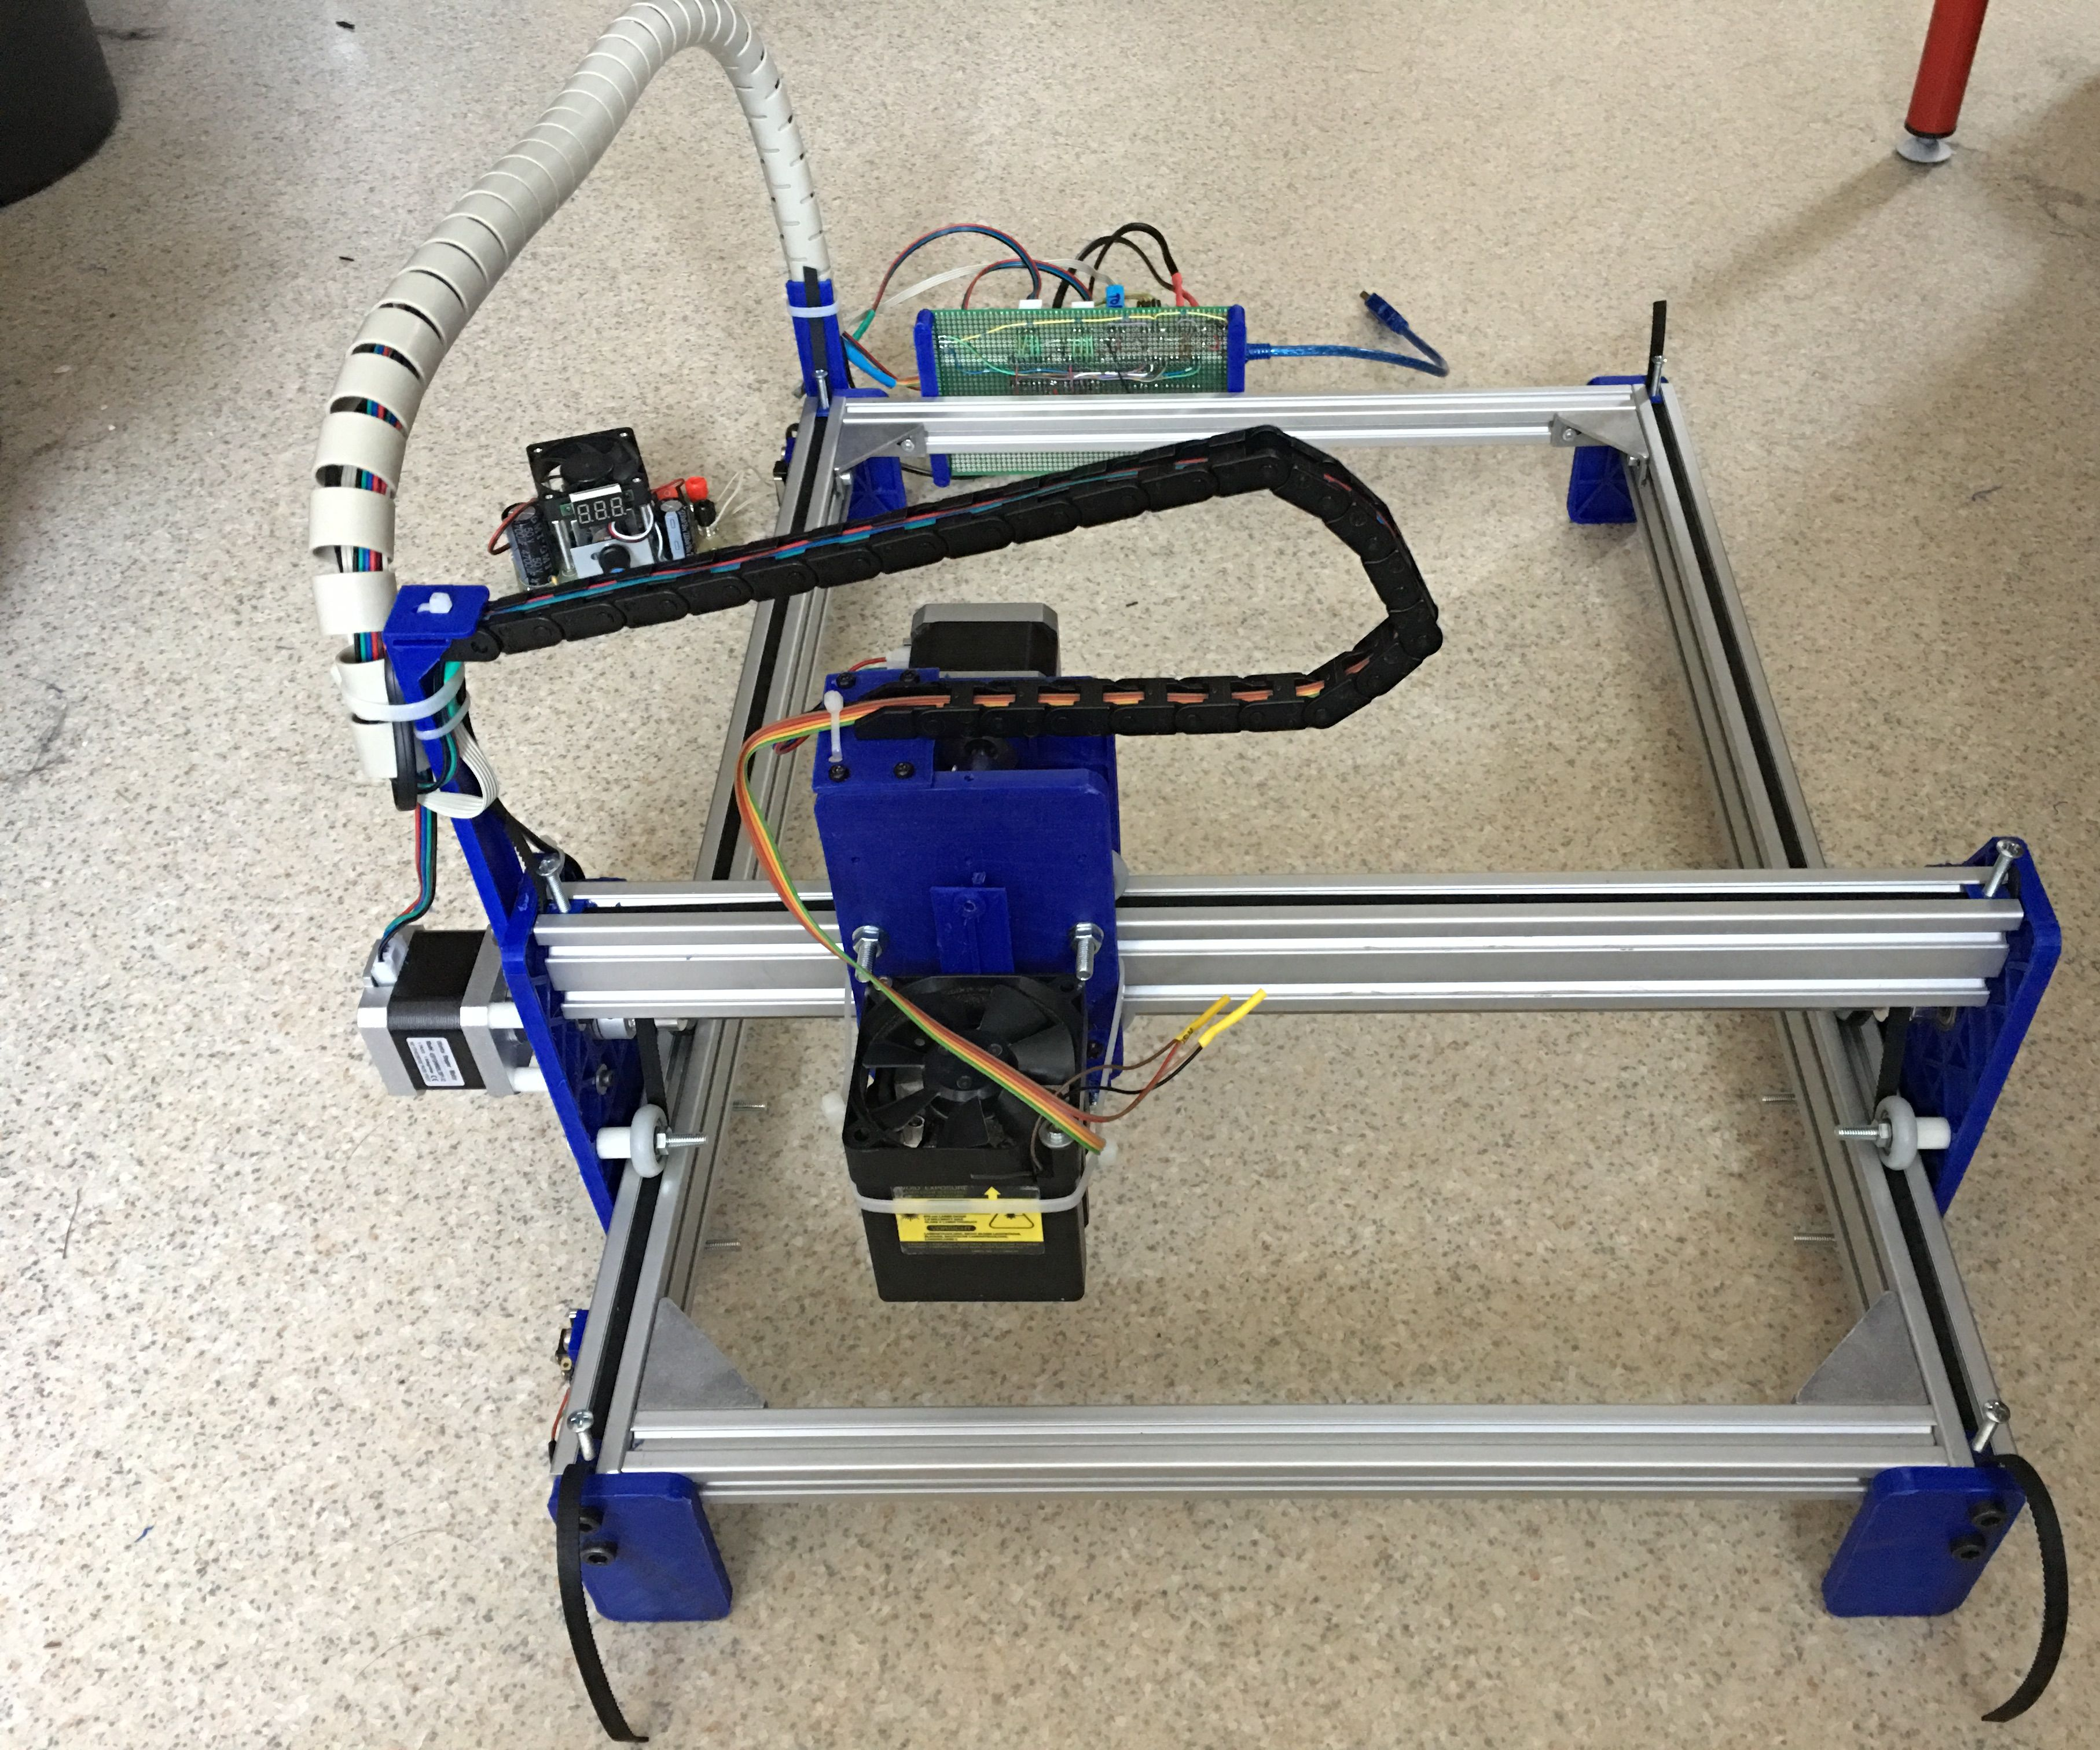 DIY 3D Printed Laser Engraver With Approx. 38x29cm Engraving Area